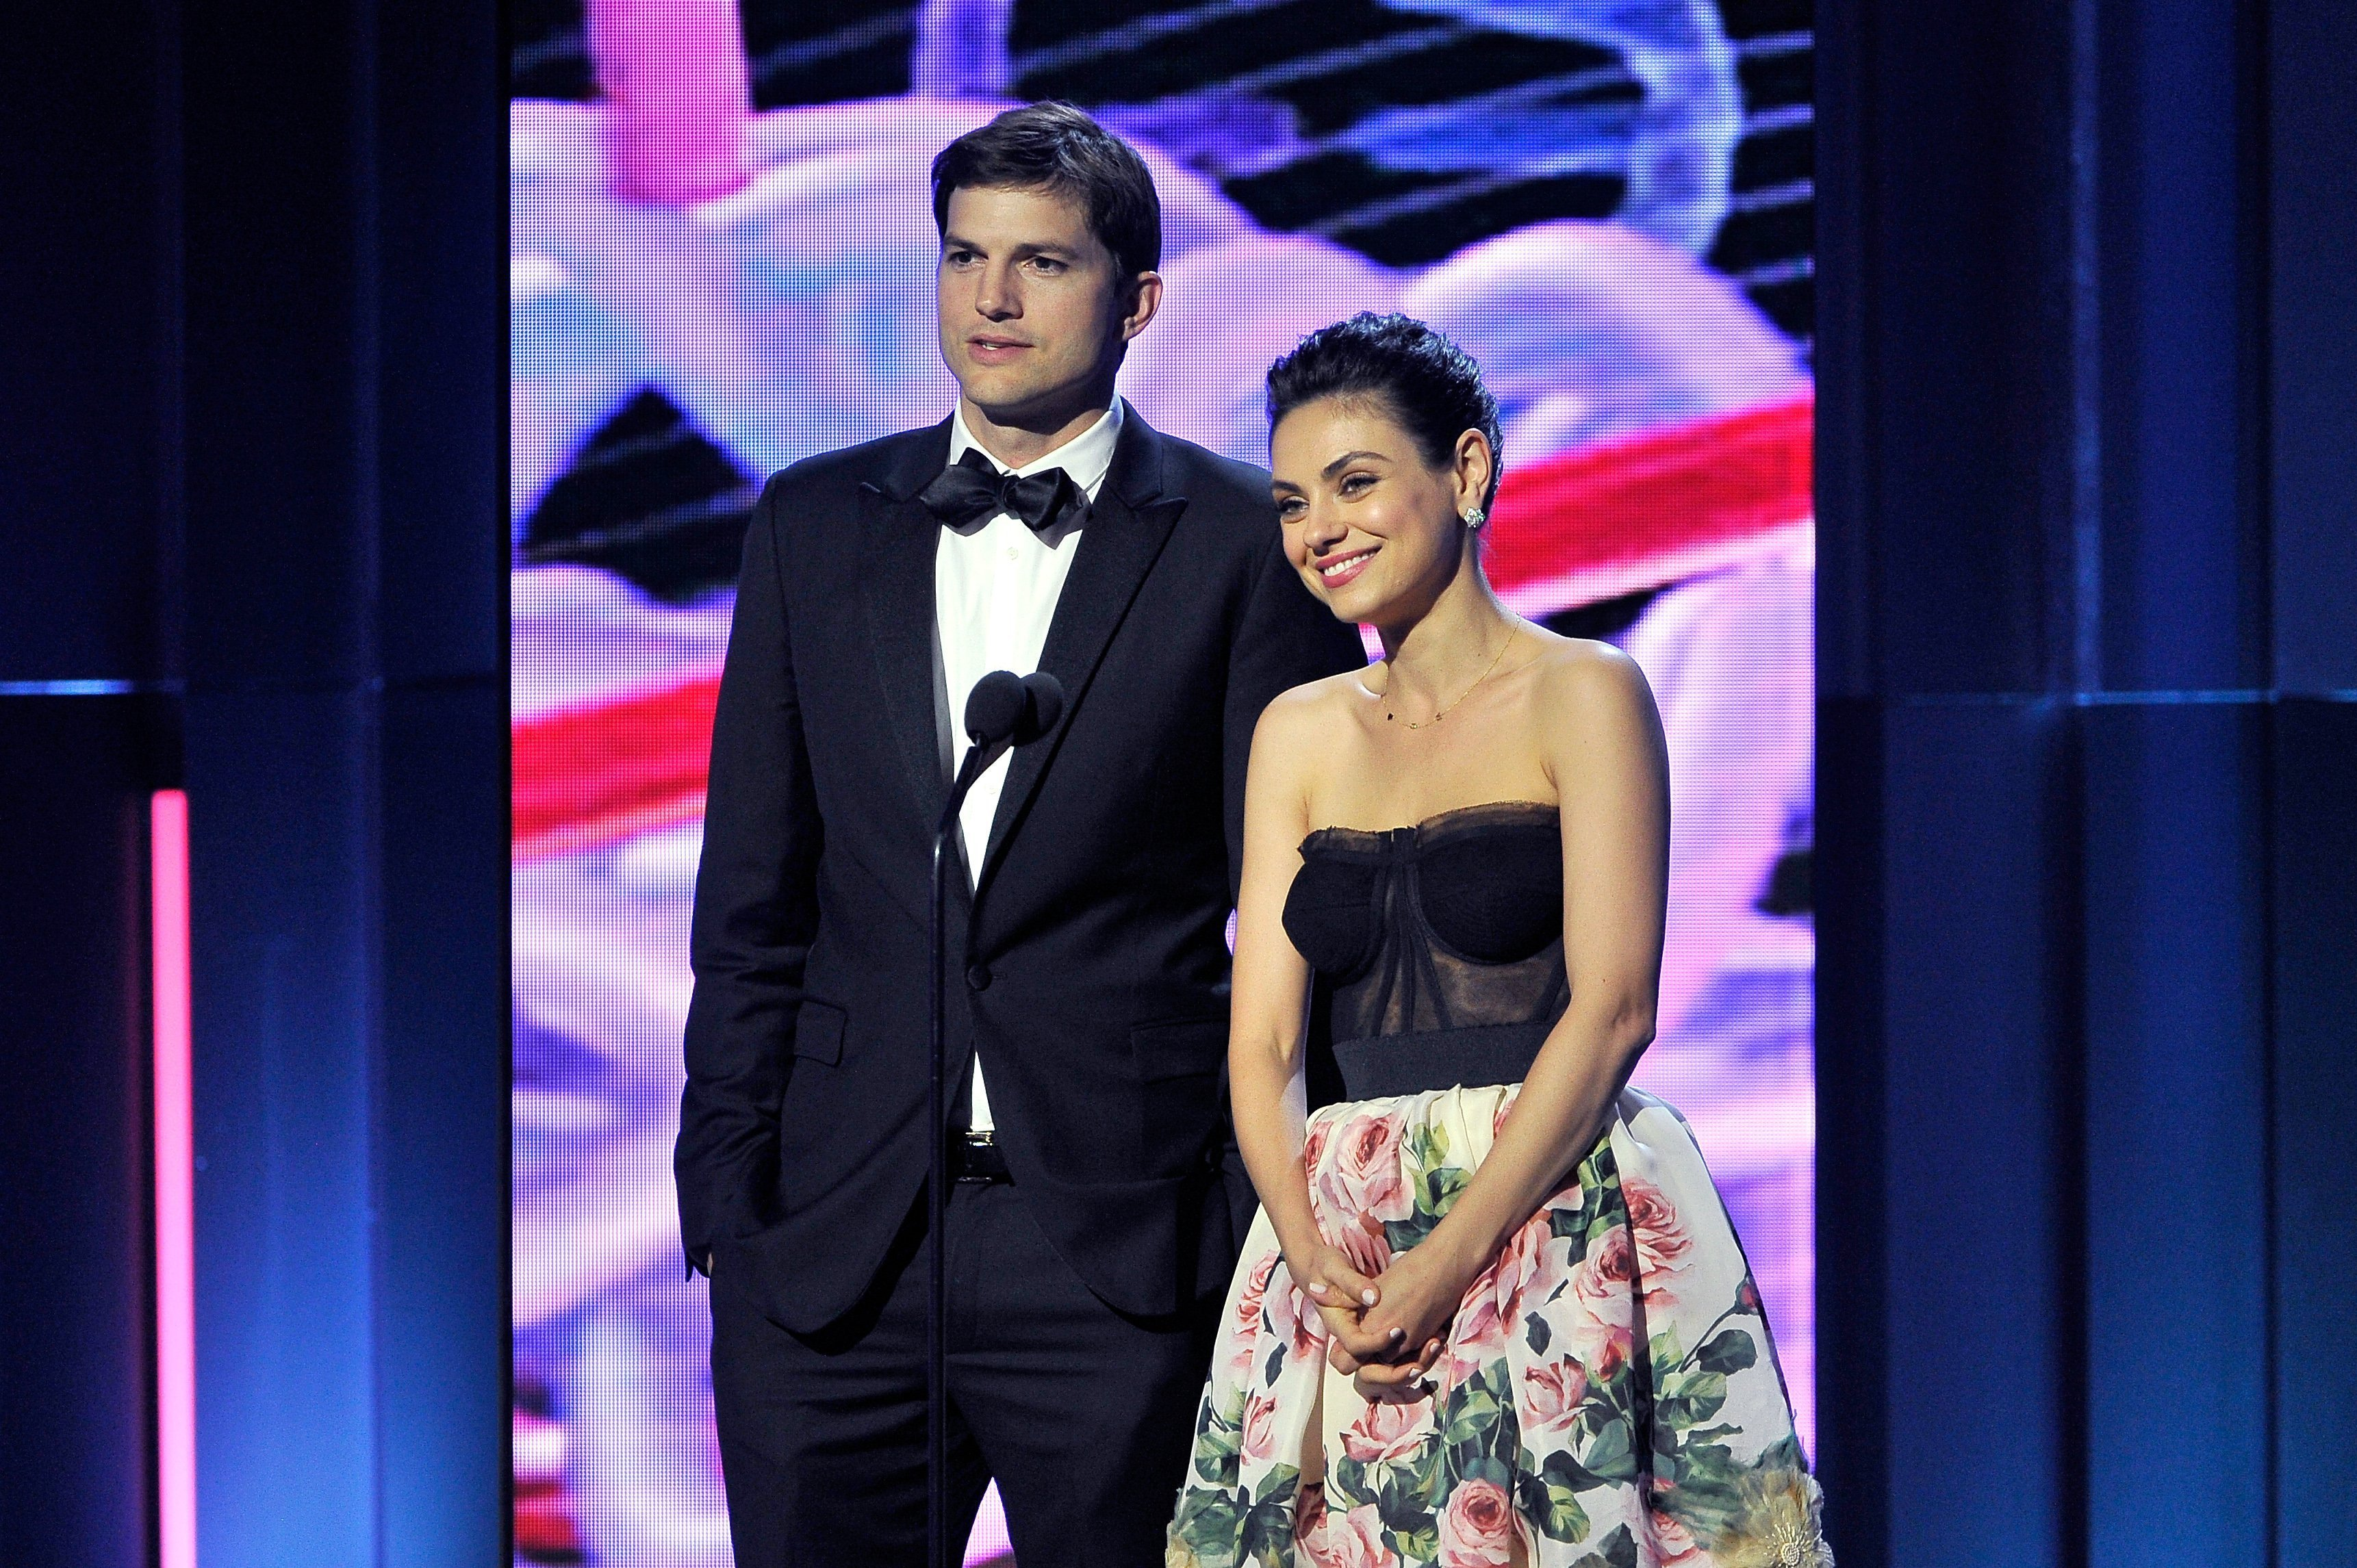 Ashton Kutcher and Mila Kunis speak at the 2018 Breakthrough Prize in Mountain View, California on December 3, 2017 | Photo: Getty Images